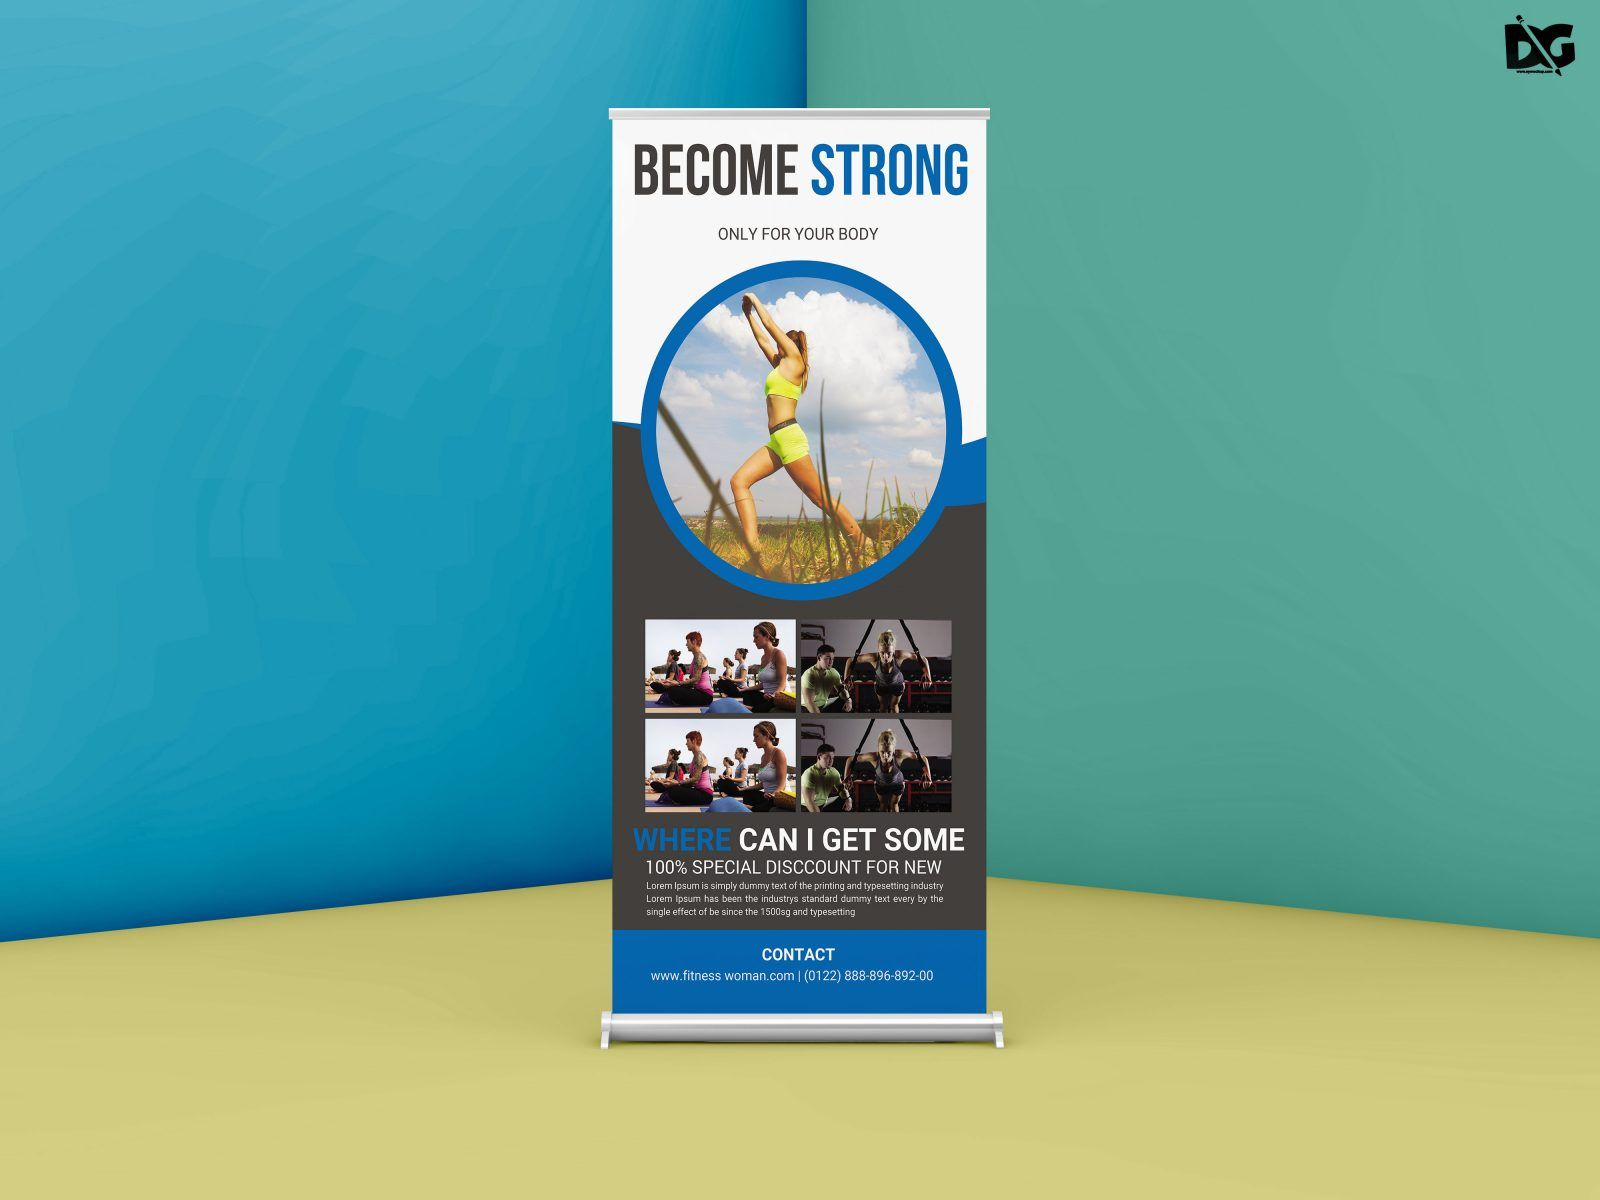 Gym Roll Up Banner Psd Mockup Availble For Free Gym Banner Psd Mockup Banner Template Banner Free Banner